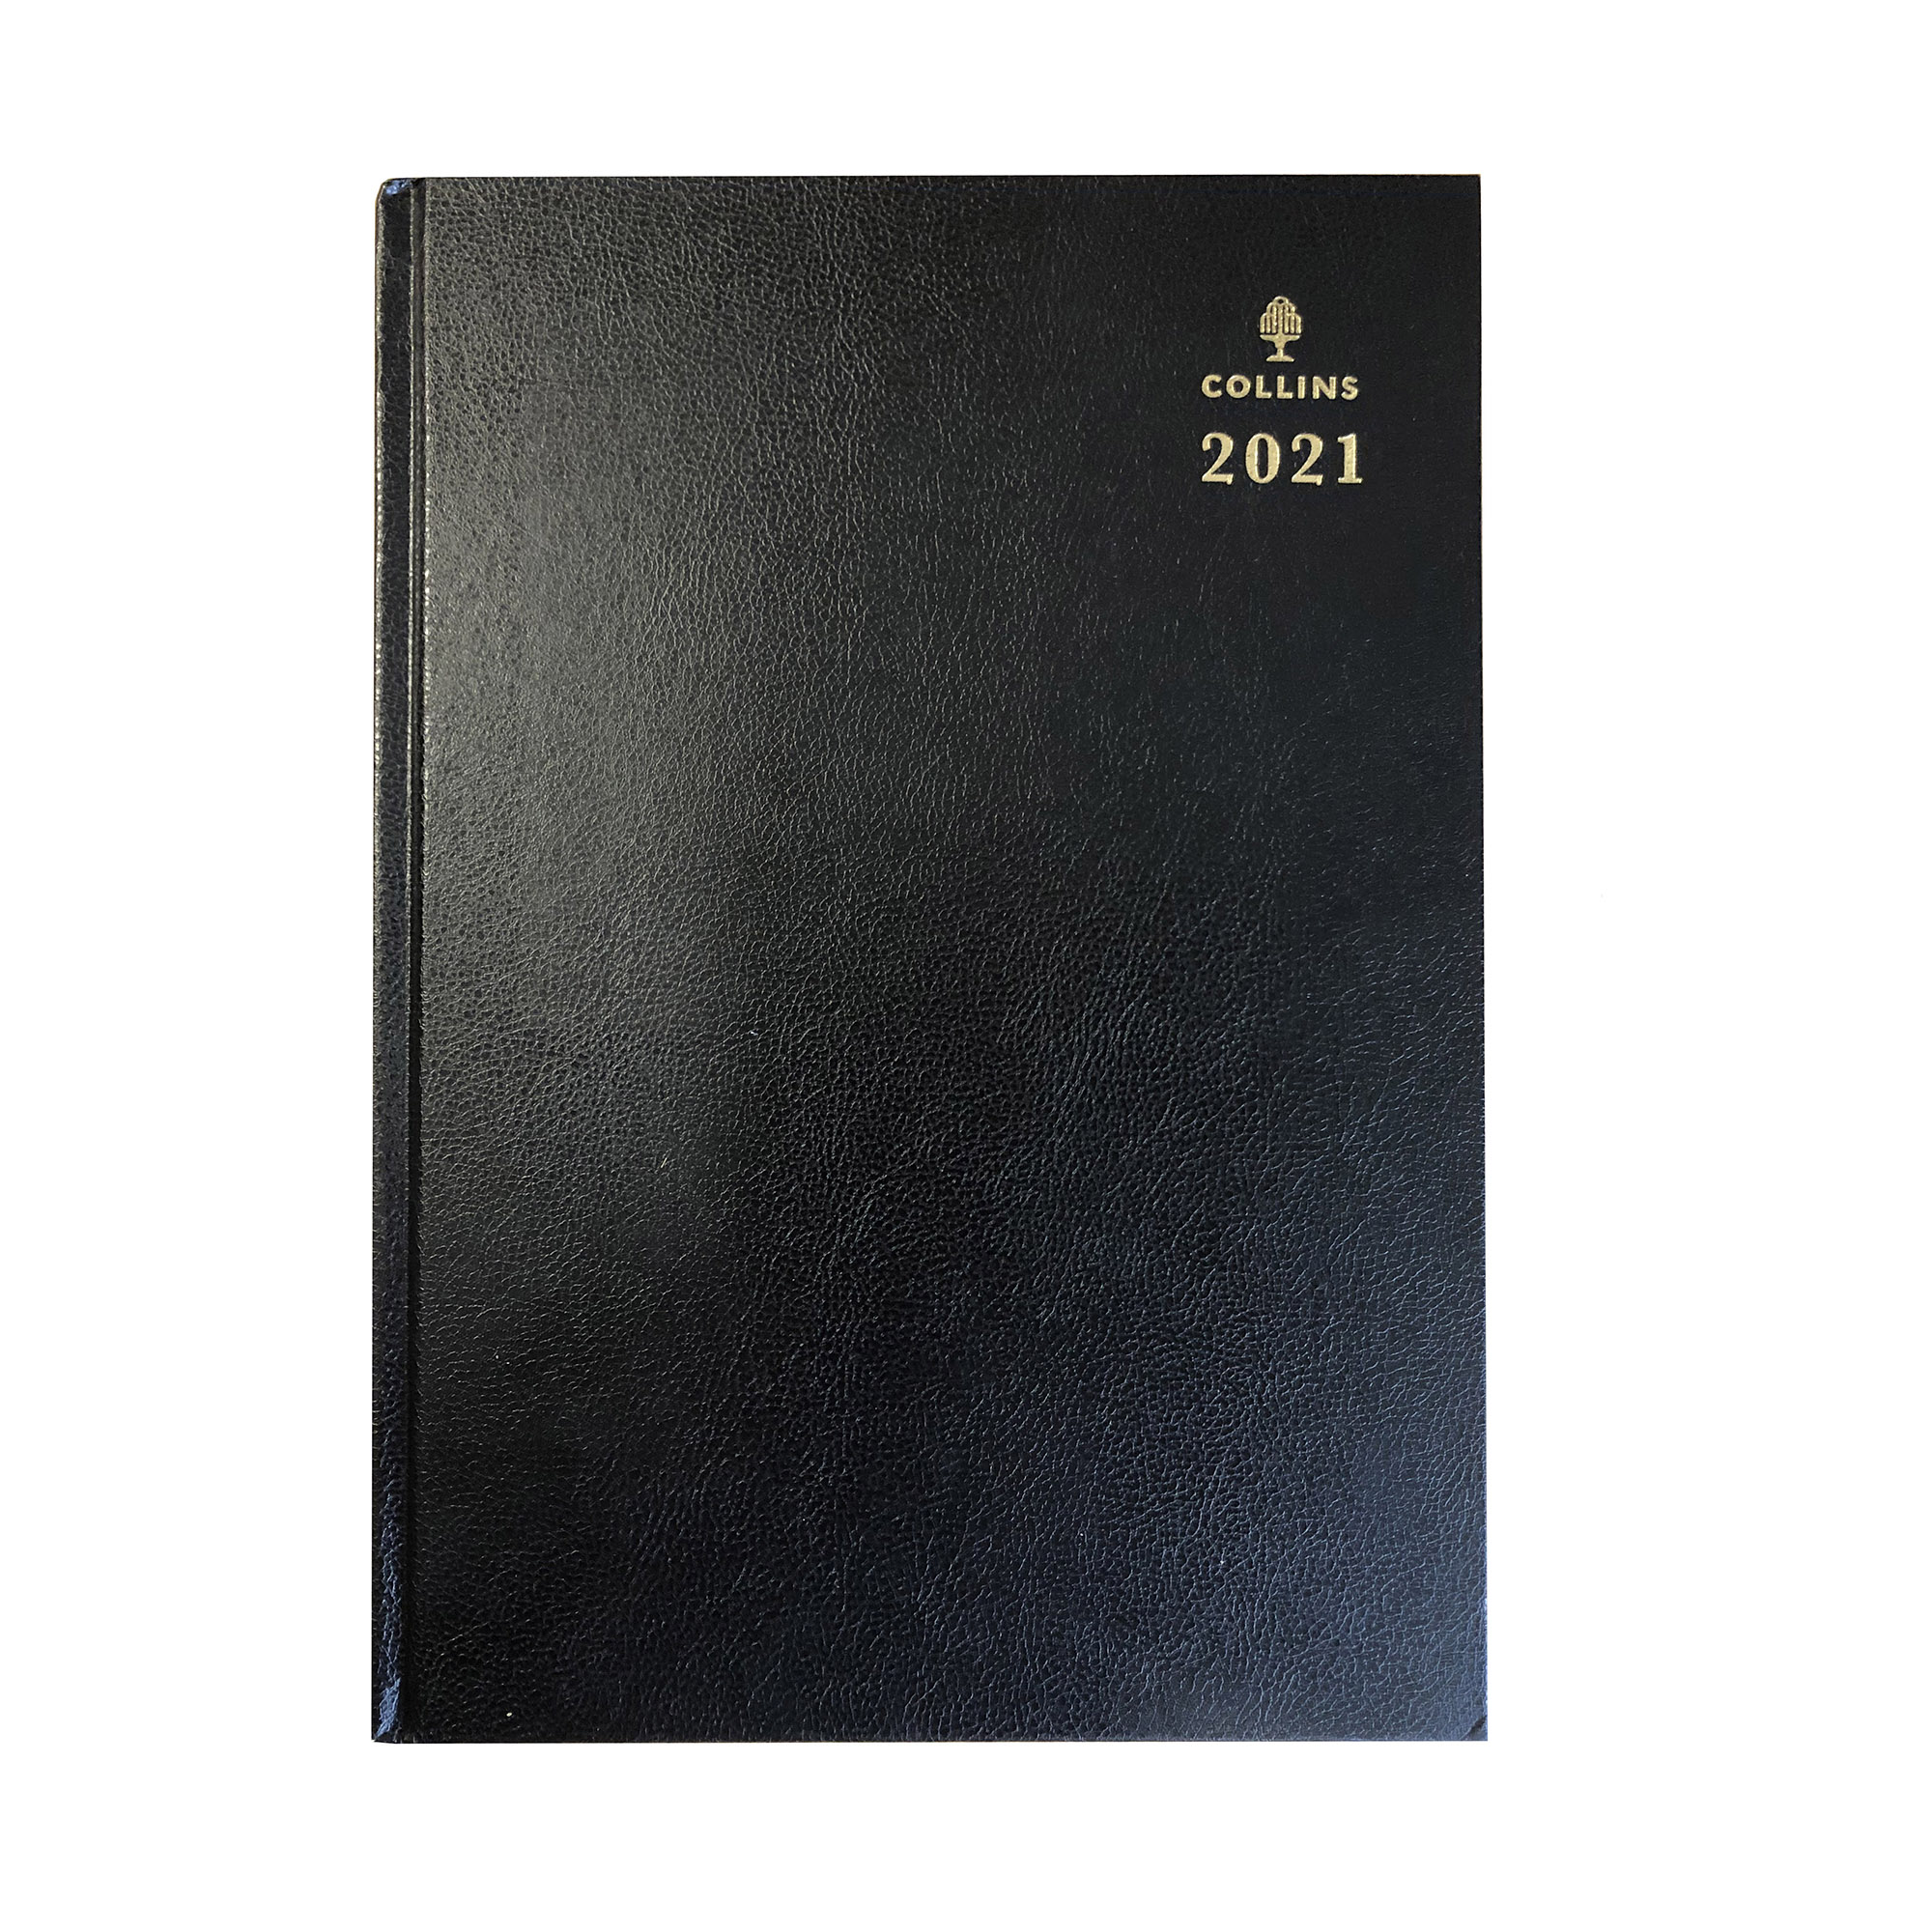 Diaries Collins 2021 Royal Desk Diary Day to Page Sewn Binding A5 210x148mm Black Ref 52 Blk 2021